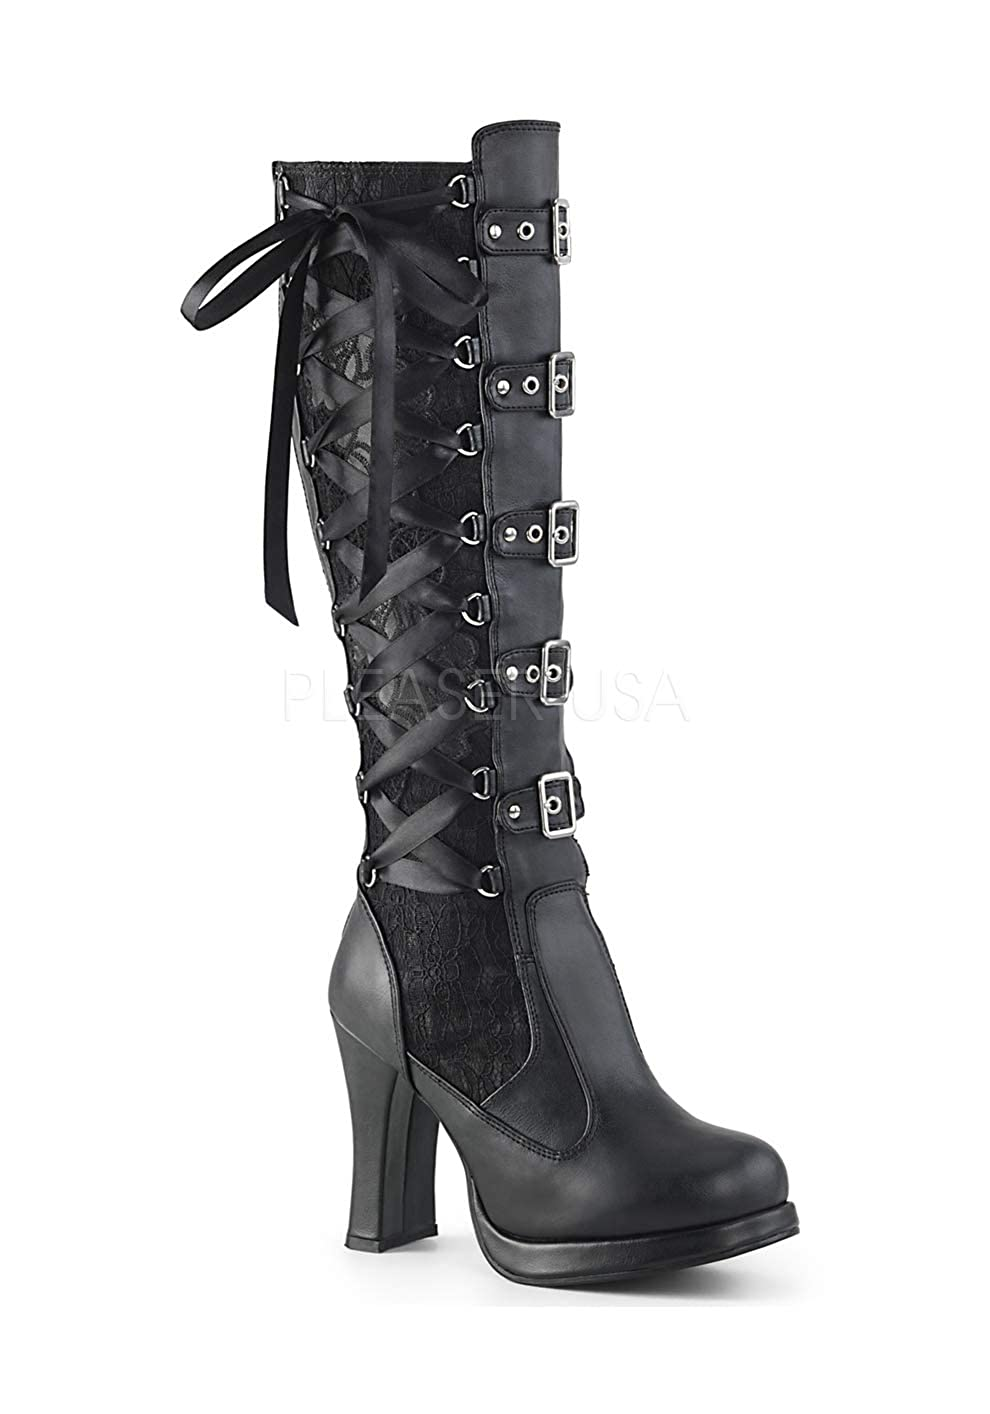 Demonia CRYPTO-106 Blk Vegan Leather-Lace UK 8 (EU 41) 41) 41) 018423